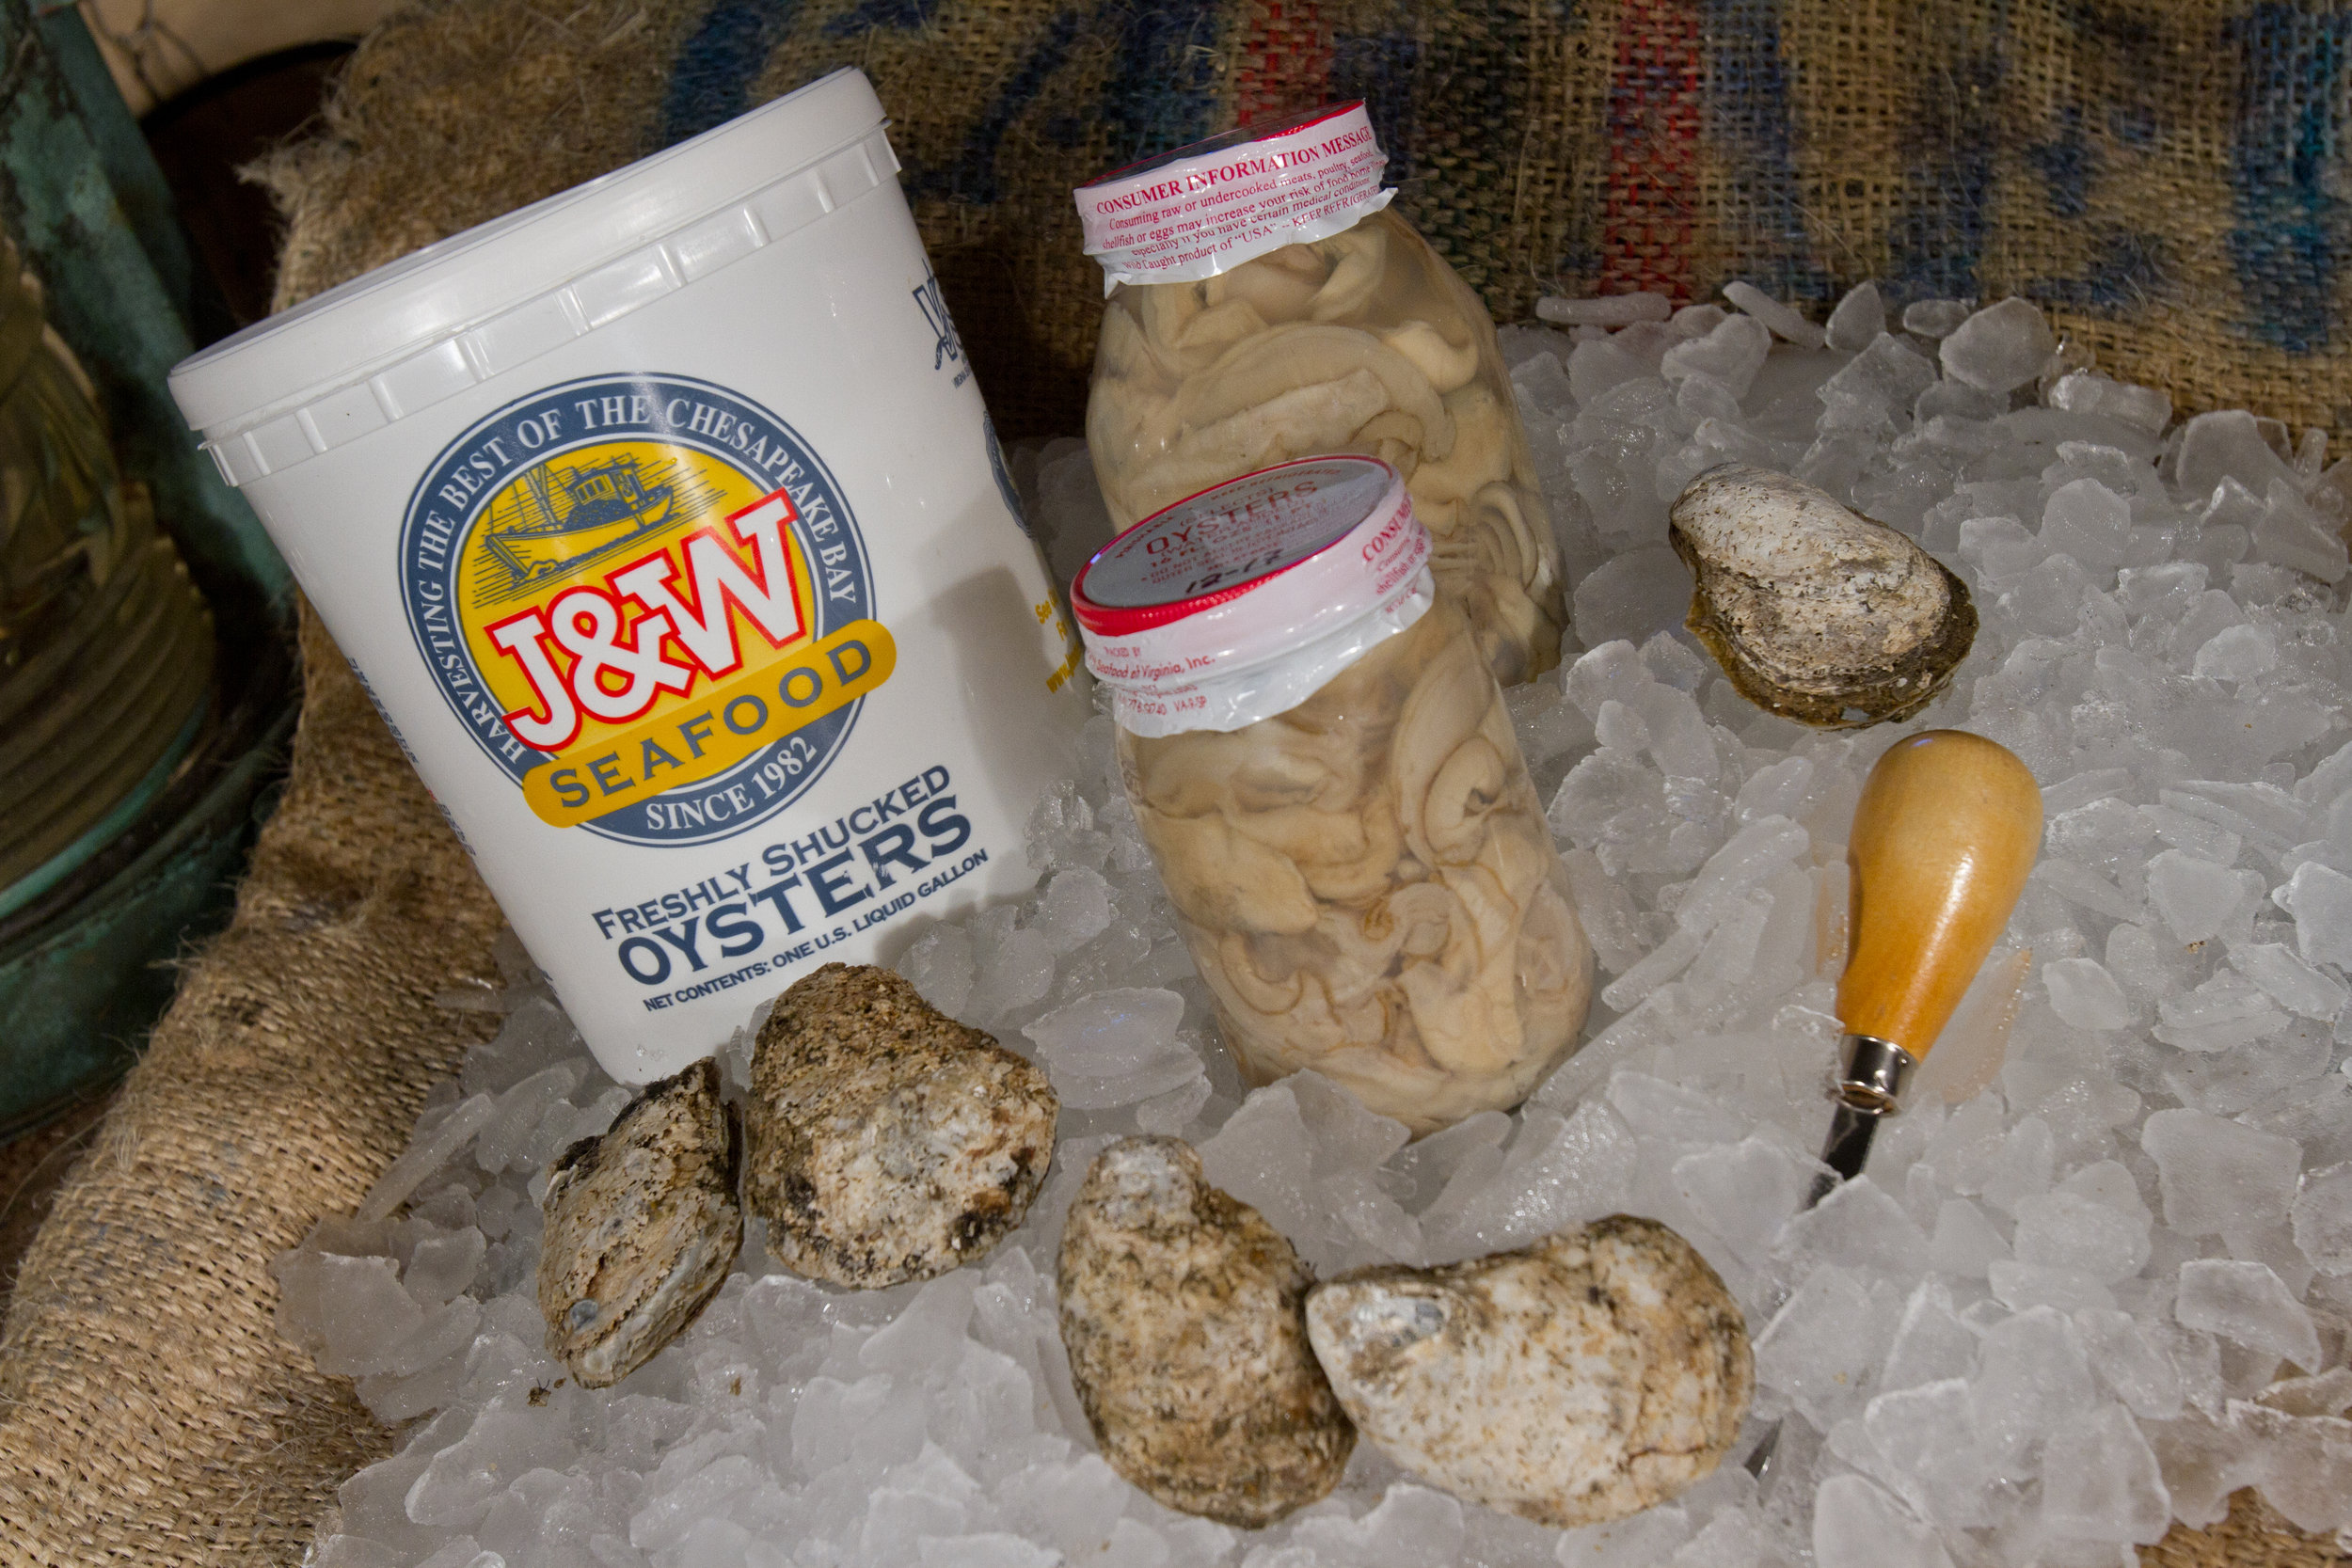 Oysters - Oysters are our business - how can we help?